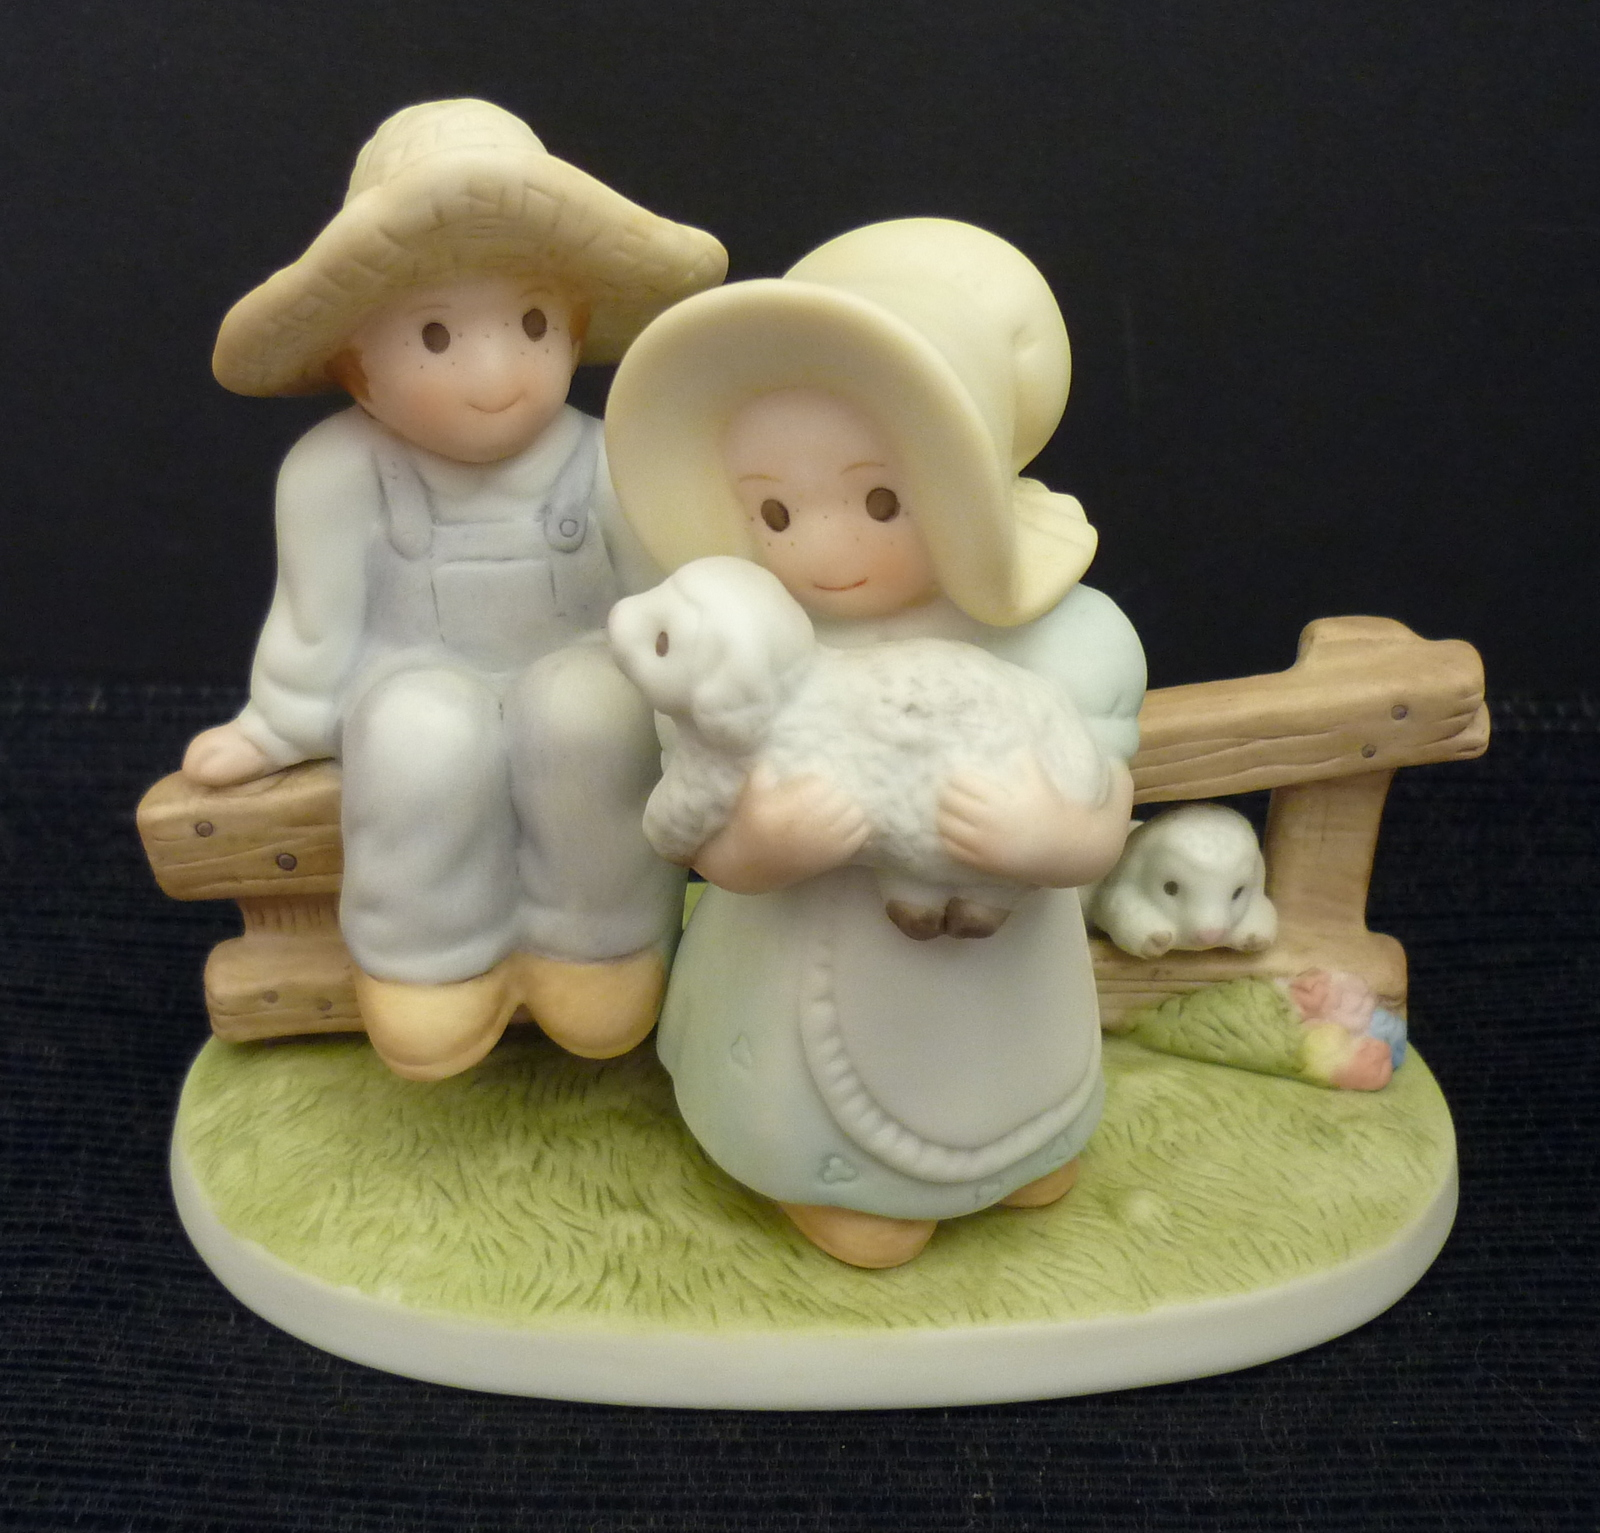 Homco figurine lord is my shepherd home interiors circle Home interiors figurines homco